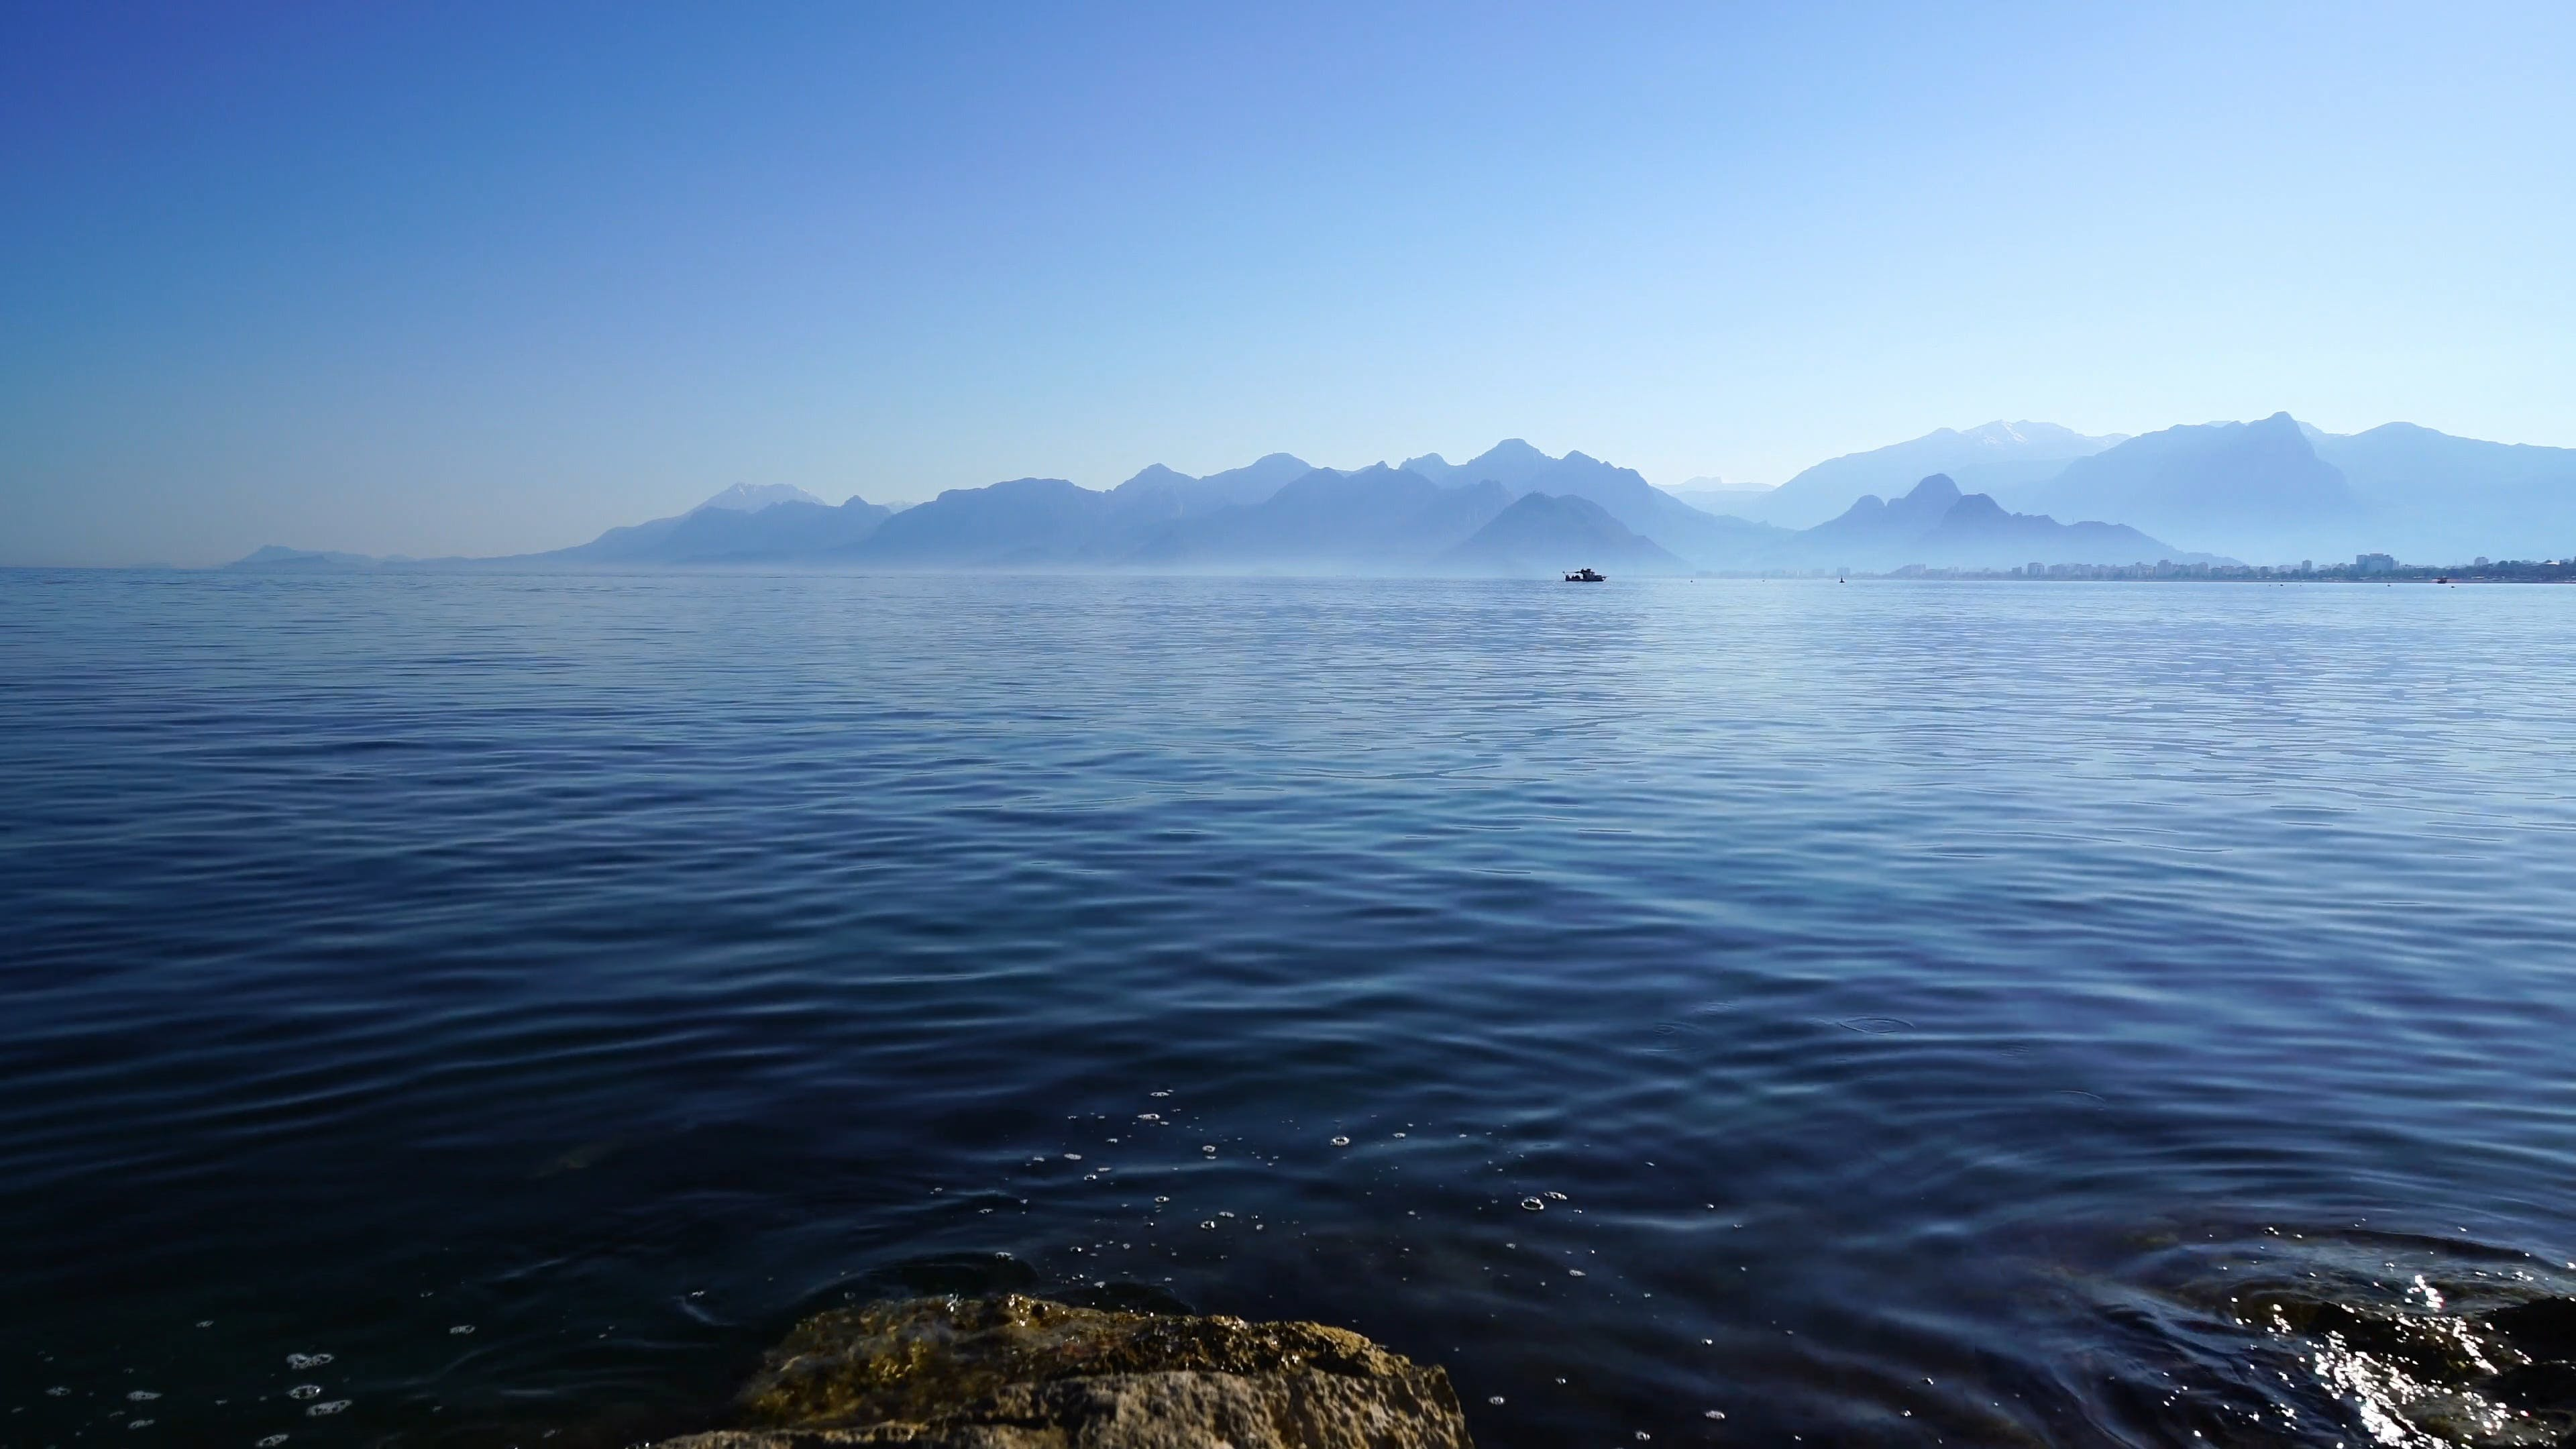 View Of The Sea With Calm Waters